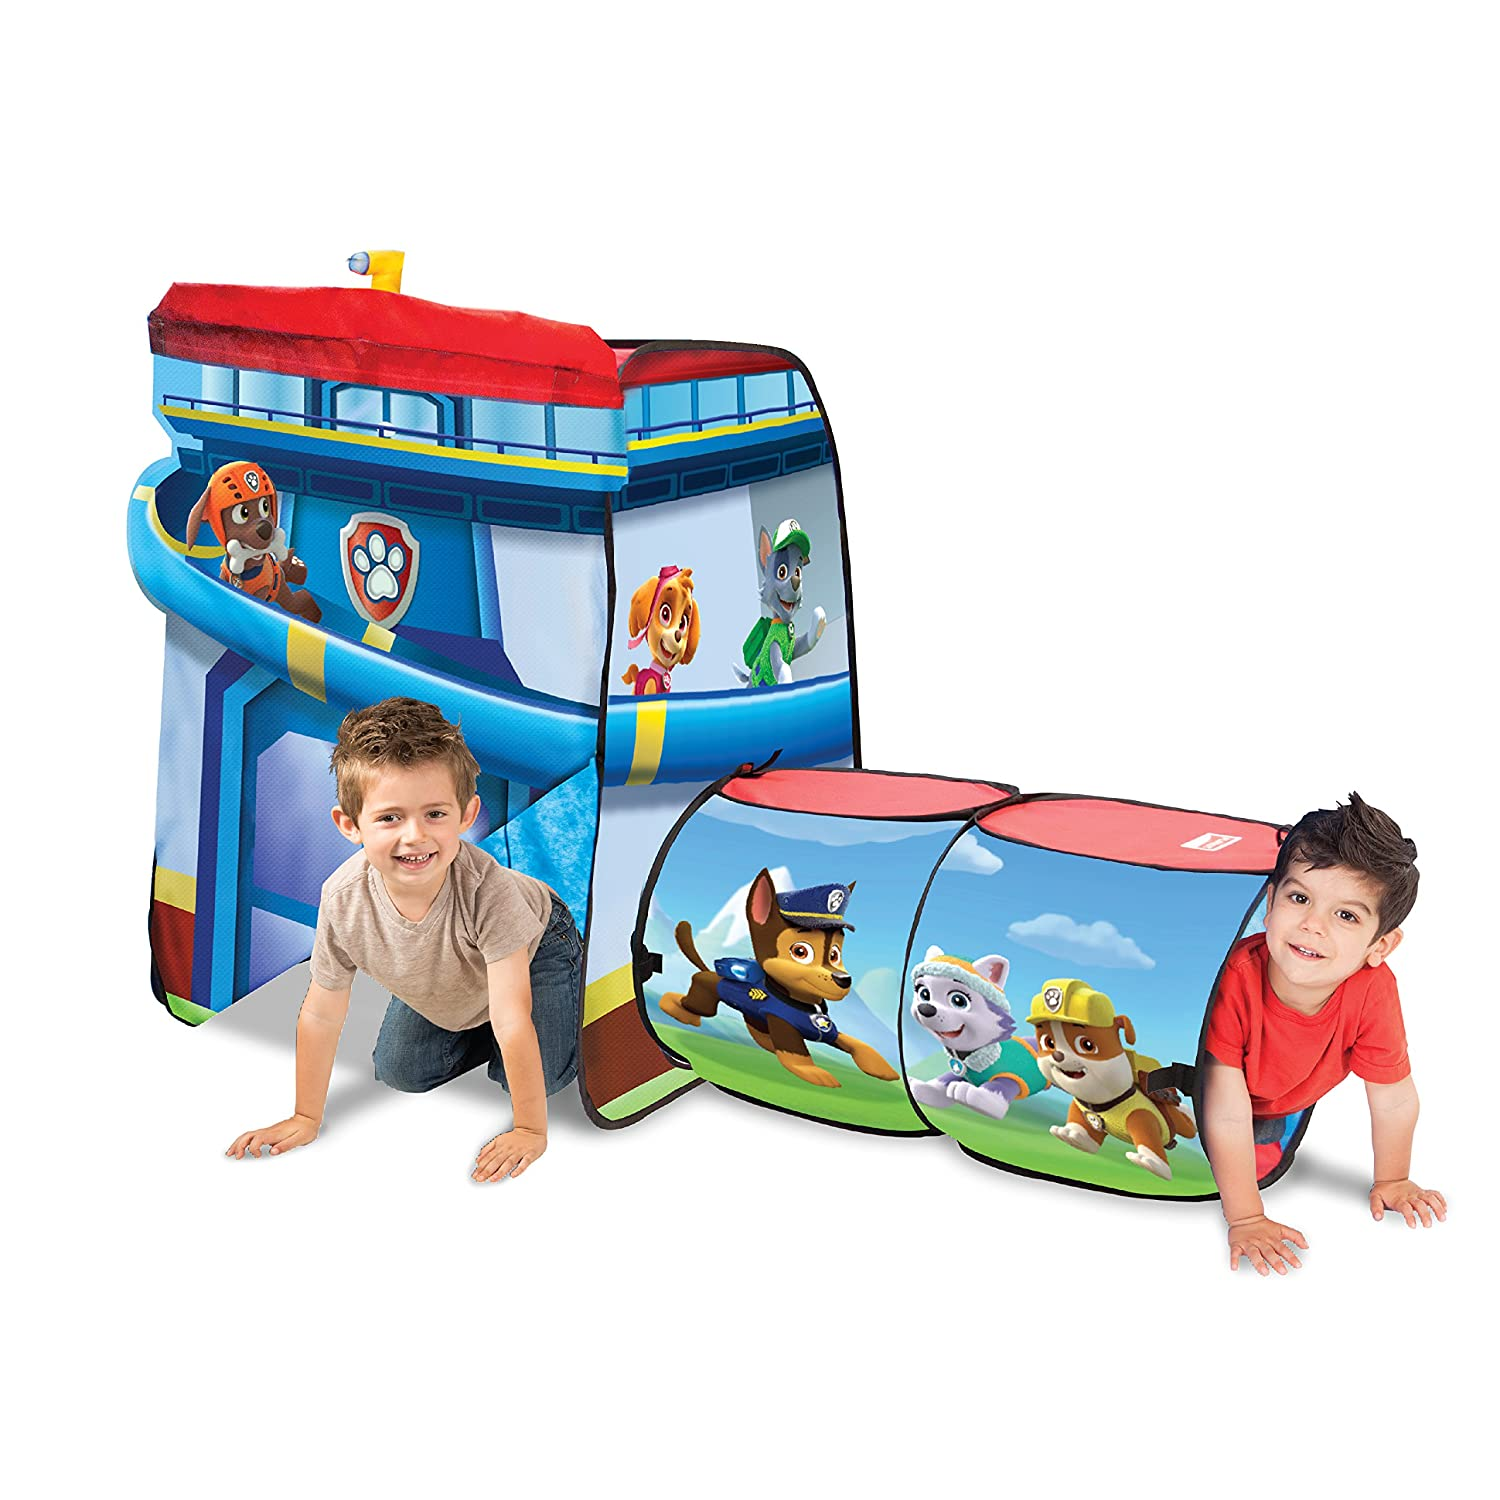 Paw Patrol Playhut Fun Play Tent Tunnel Pop Up Kids Playhouse Boy